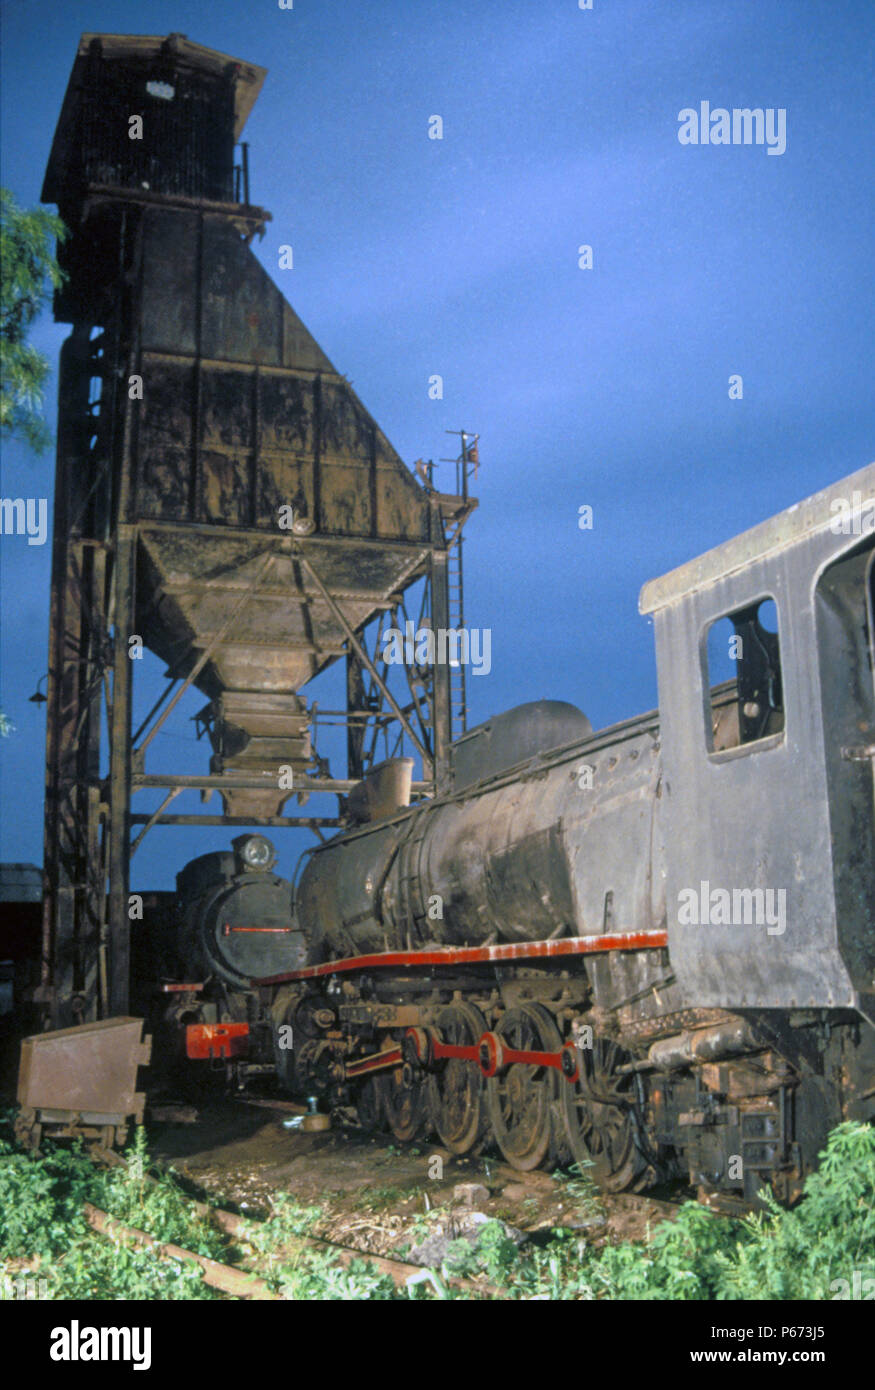 Abandoned Ghanaian locomotives beneath the coaling tower in Accra. Vulcan Foundry 4-8-2 No.266 'Techiman' with Giesl chimney in foreground with No.255 - Stock Image